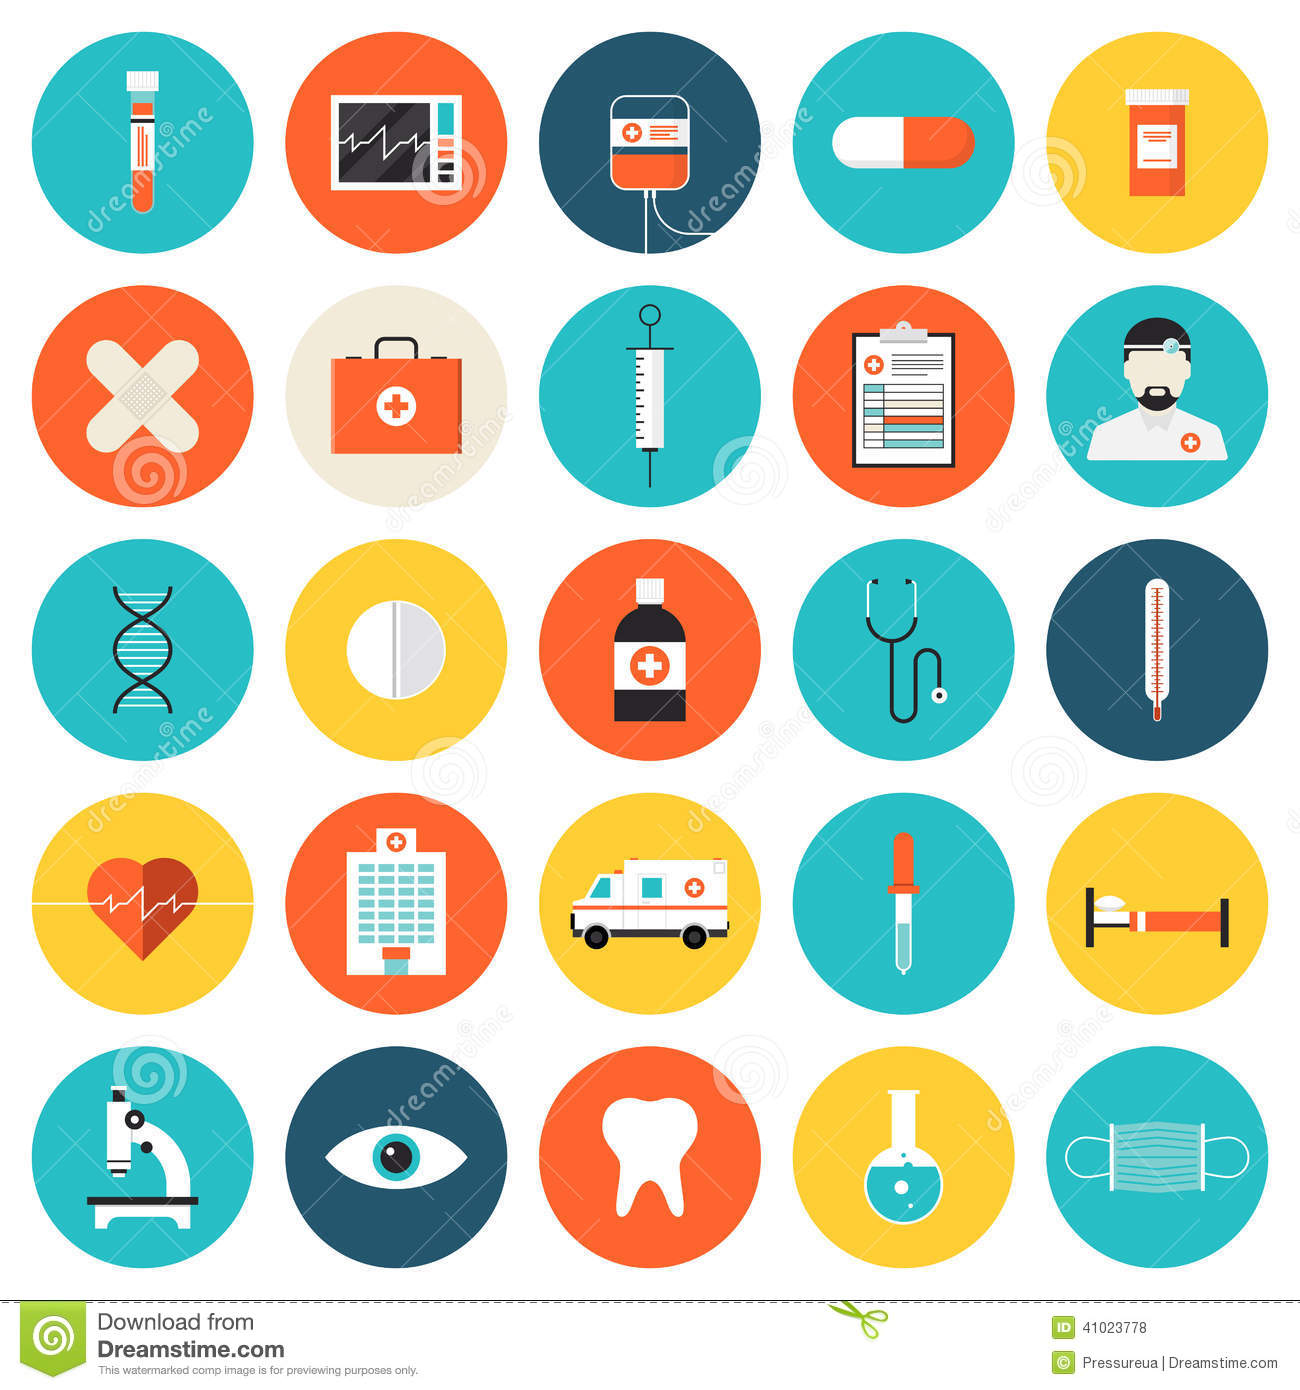 6 Flat Health Icons Images